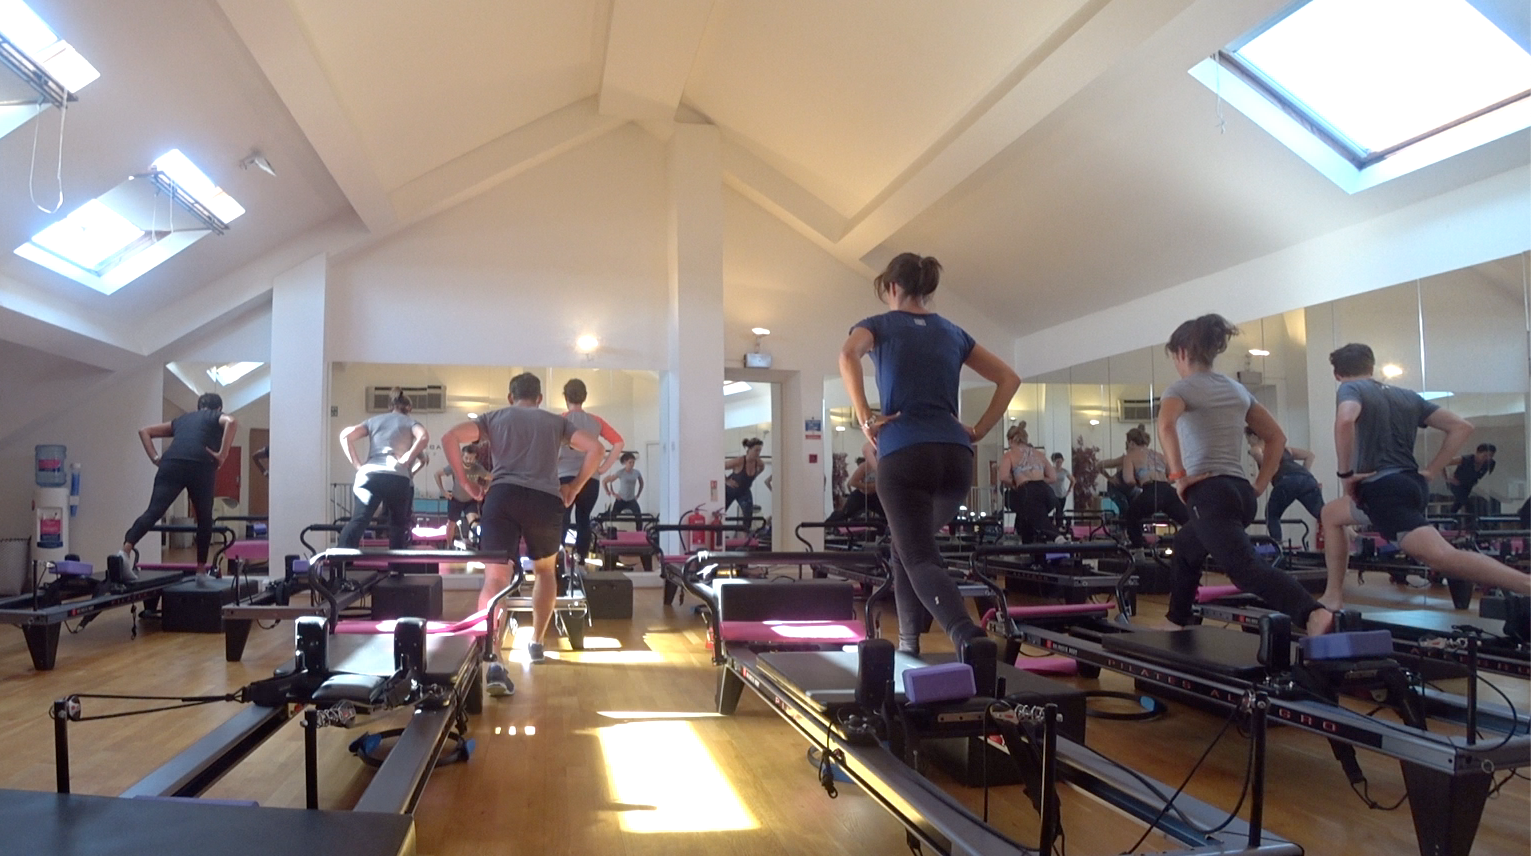 ABSOLUTE STUDIOS - The best dynamic Reformer Pilates in Parsons Green